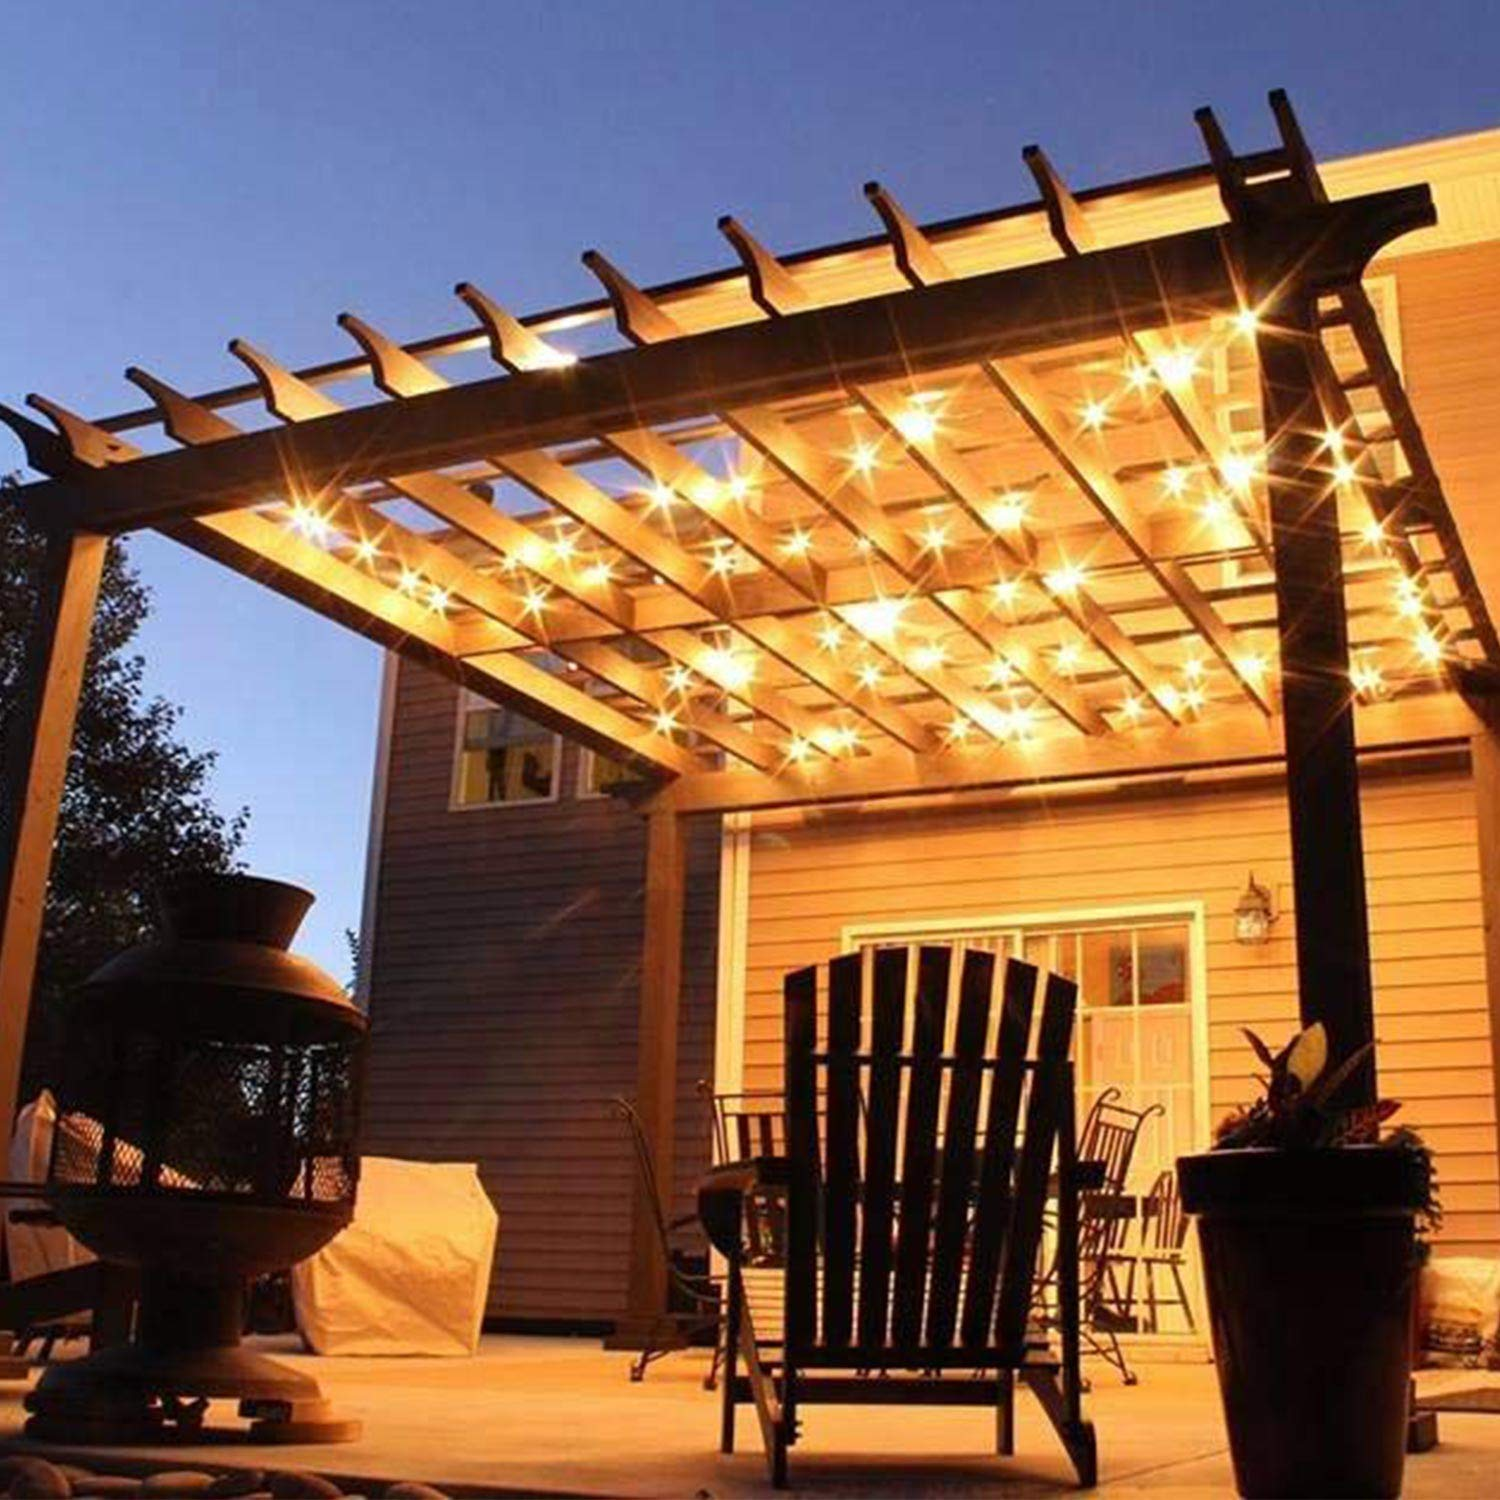 50Ft G40 Globe String Lights with Bulbs Outdoor Market Lights for Indoor/Outdoor Commercial Decor Green Wire by Brightown (Image #6)